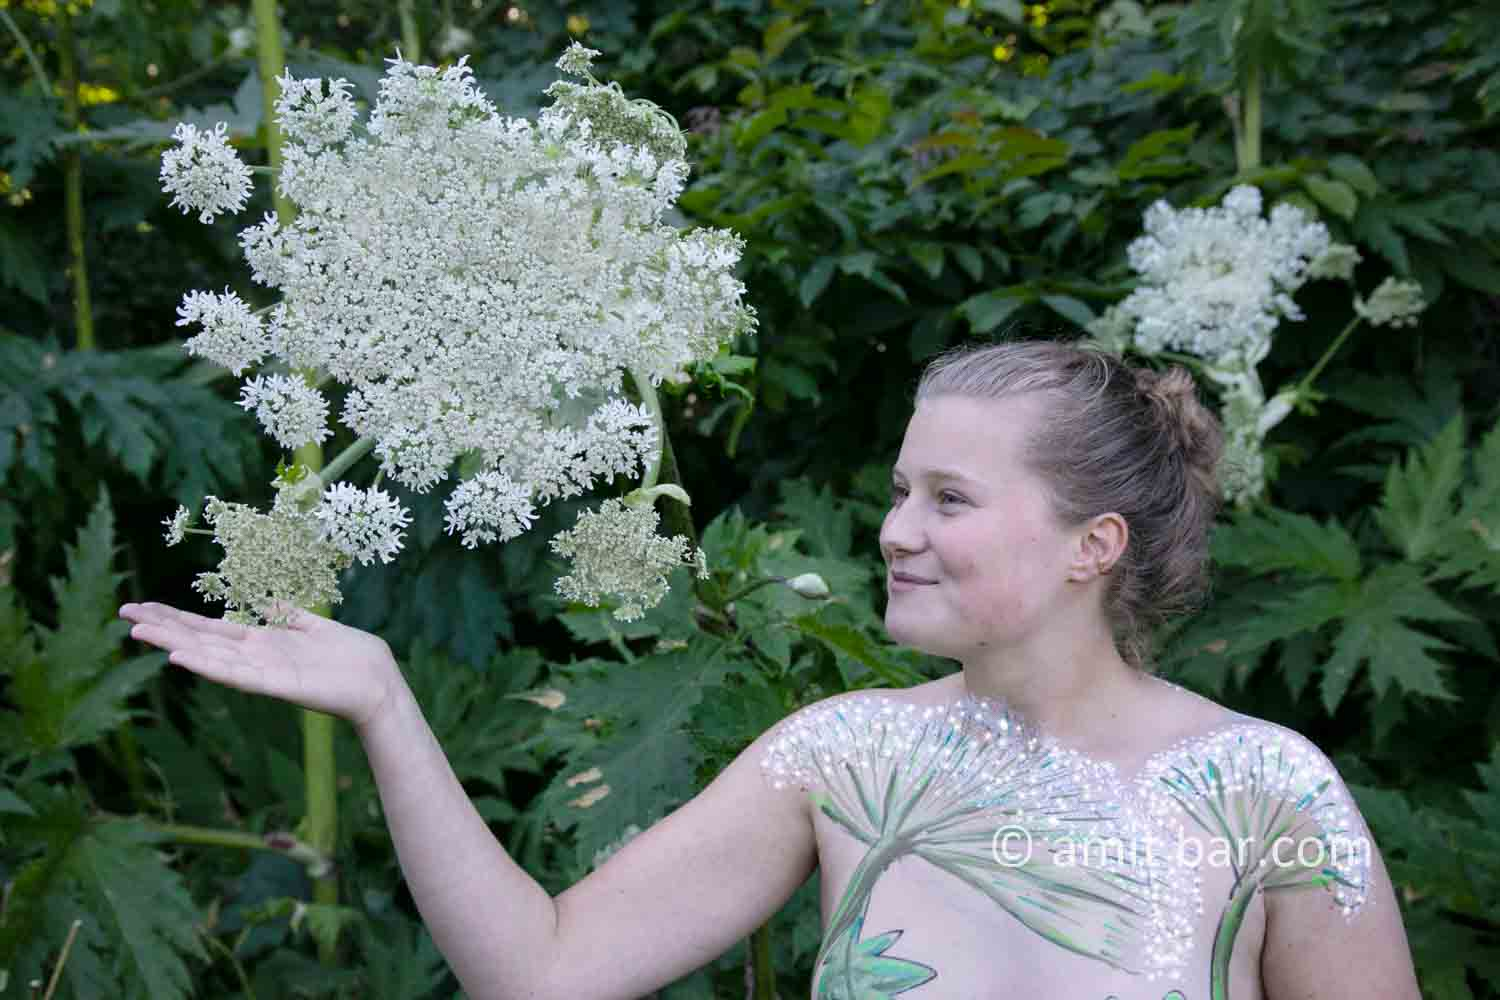 Hogweed plant portrait II: A Portrait of Shelly, who is walking along the beautiful Giant Hogweed plant